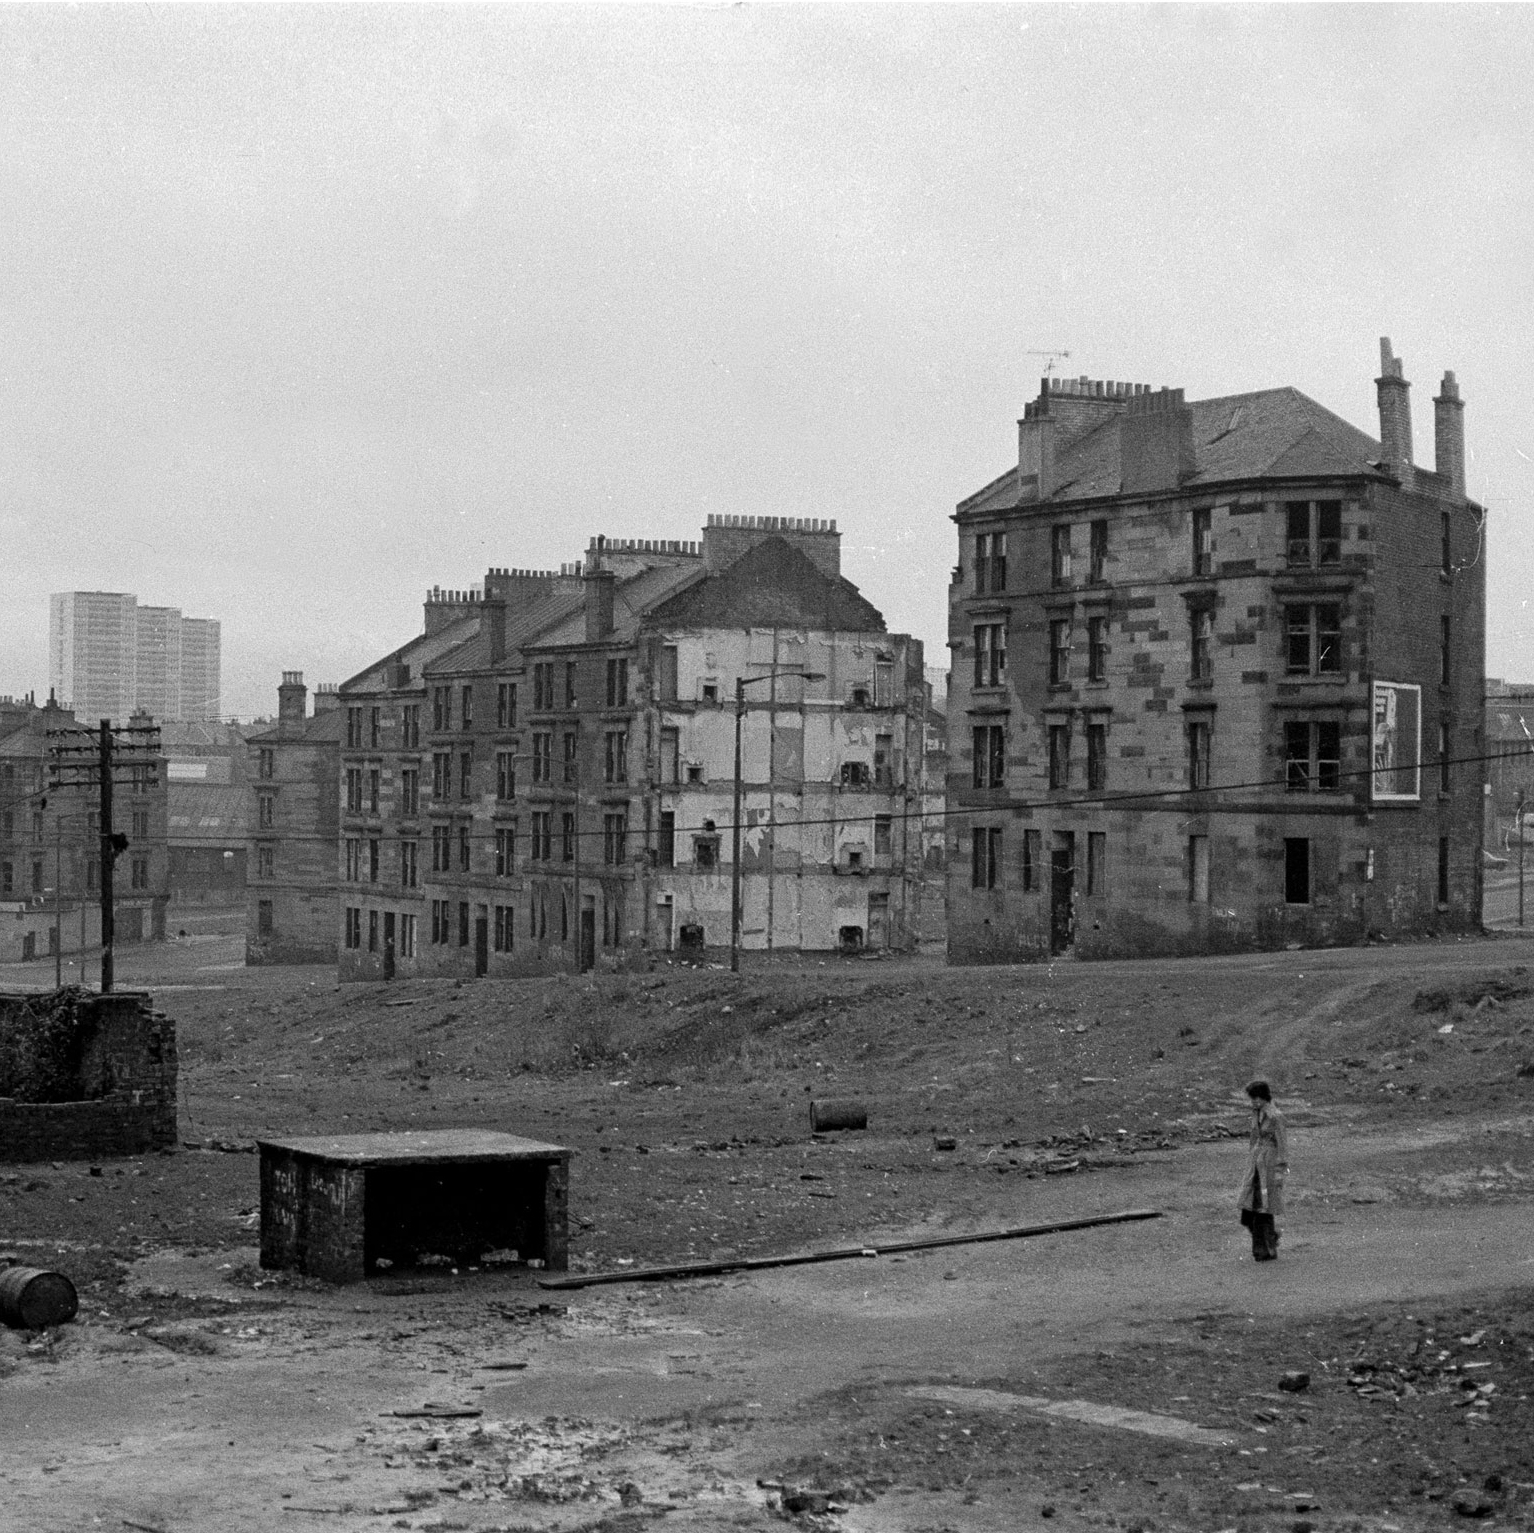 Image of Untitled, from 'Glasgow 1974' (Demolished tenements) by Hugh Hood